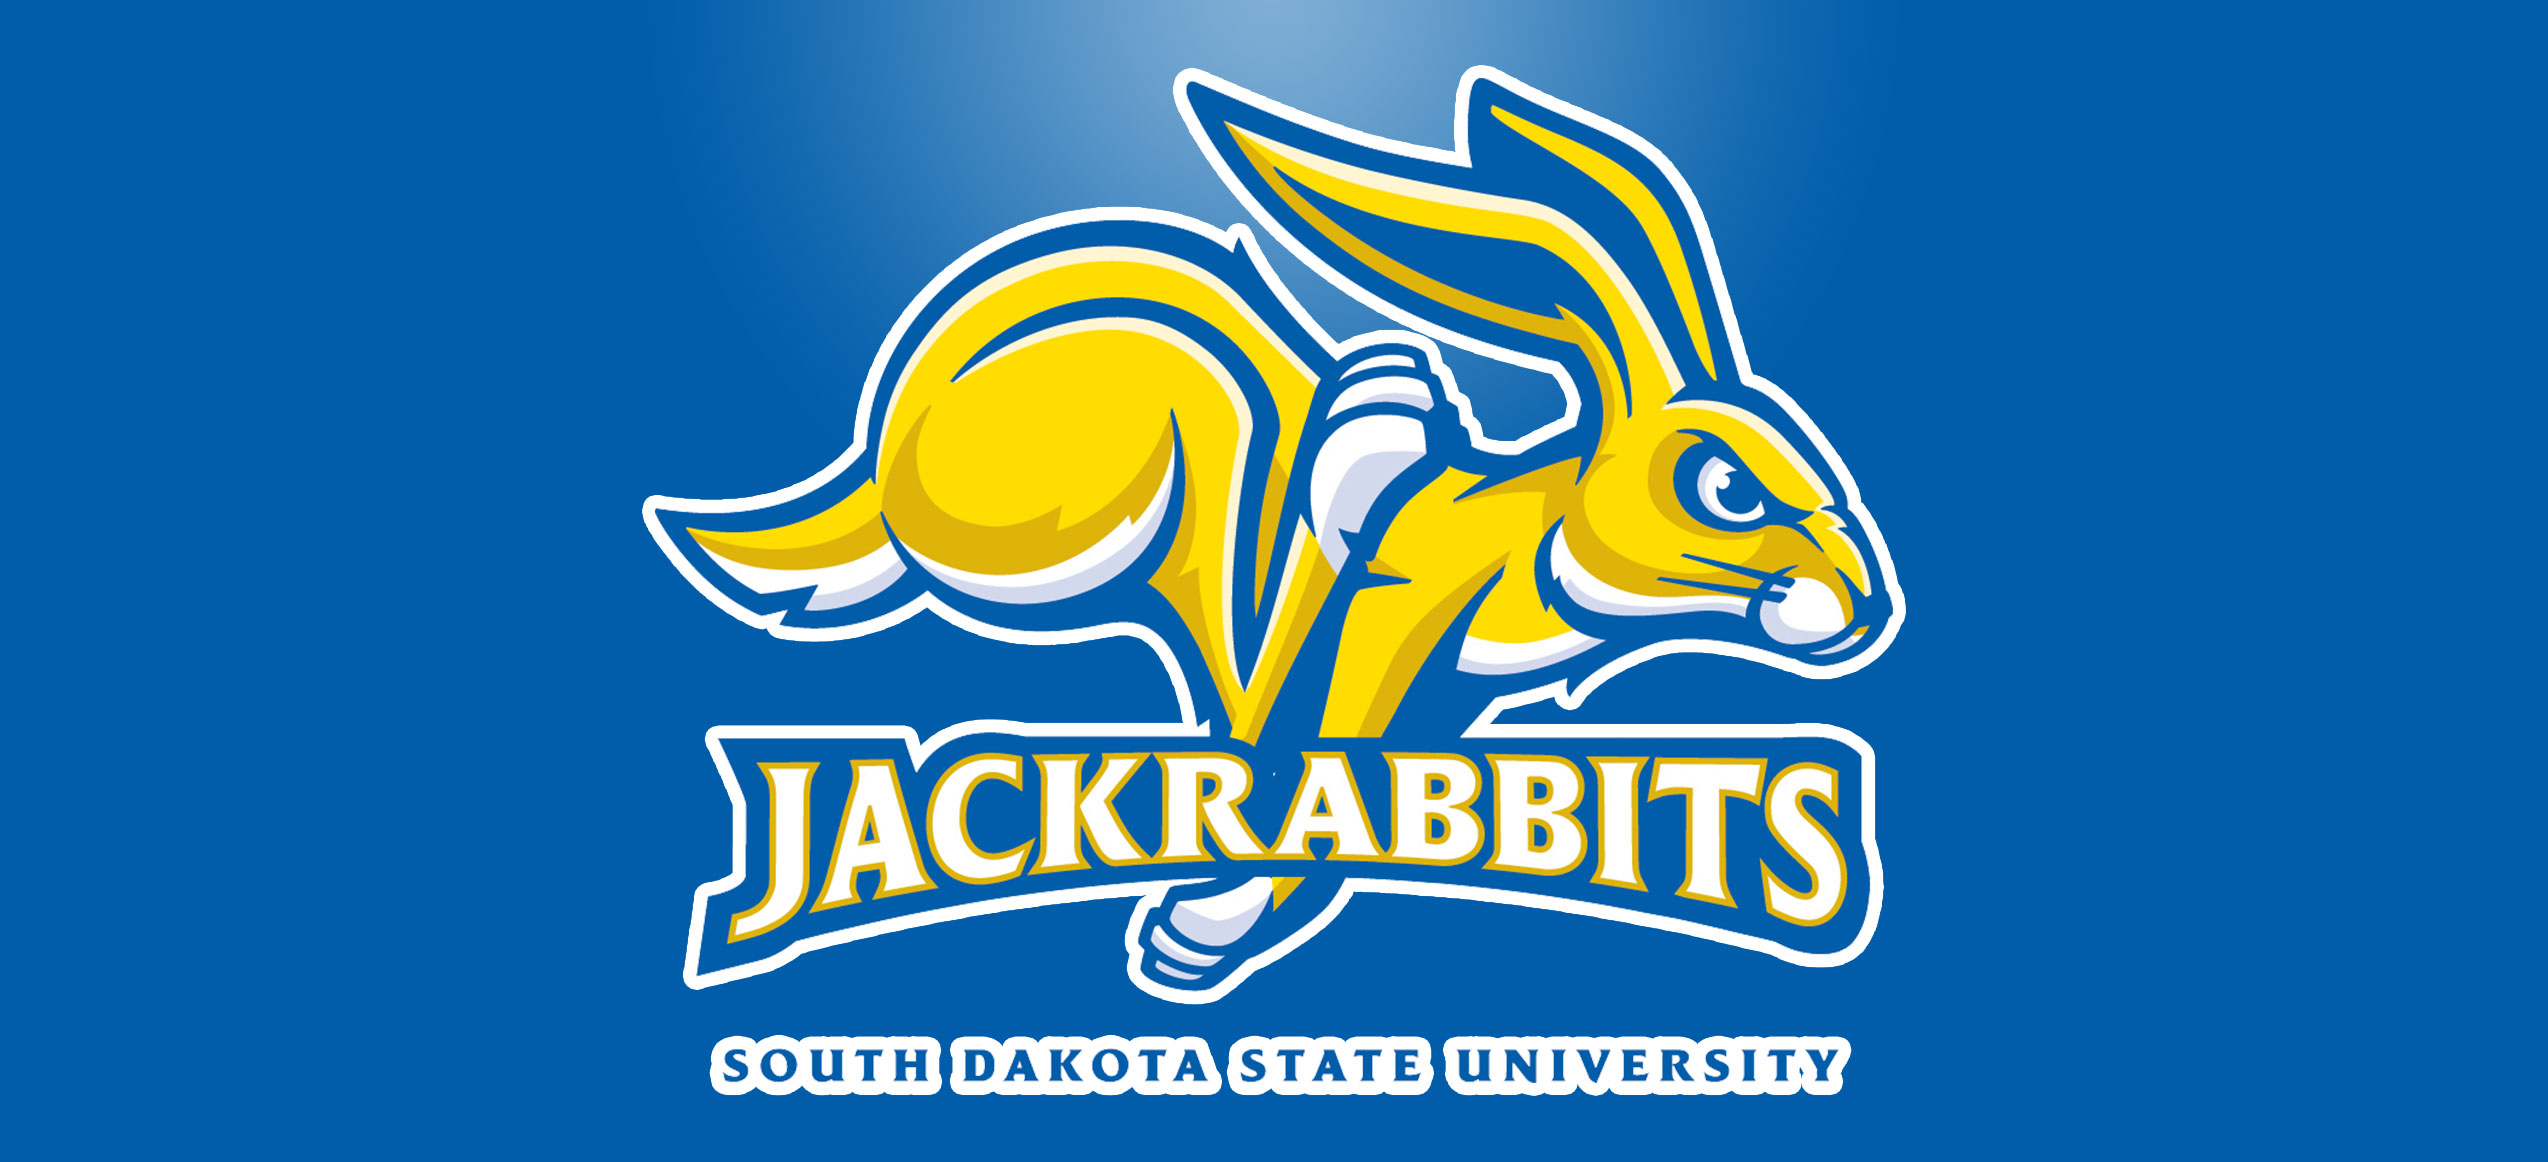 south dakota state university SDSU logo jackrabbits